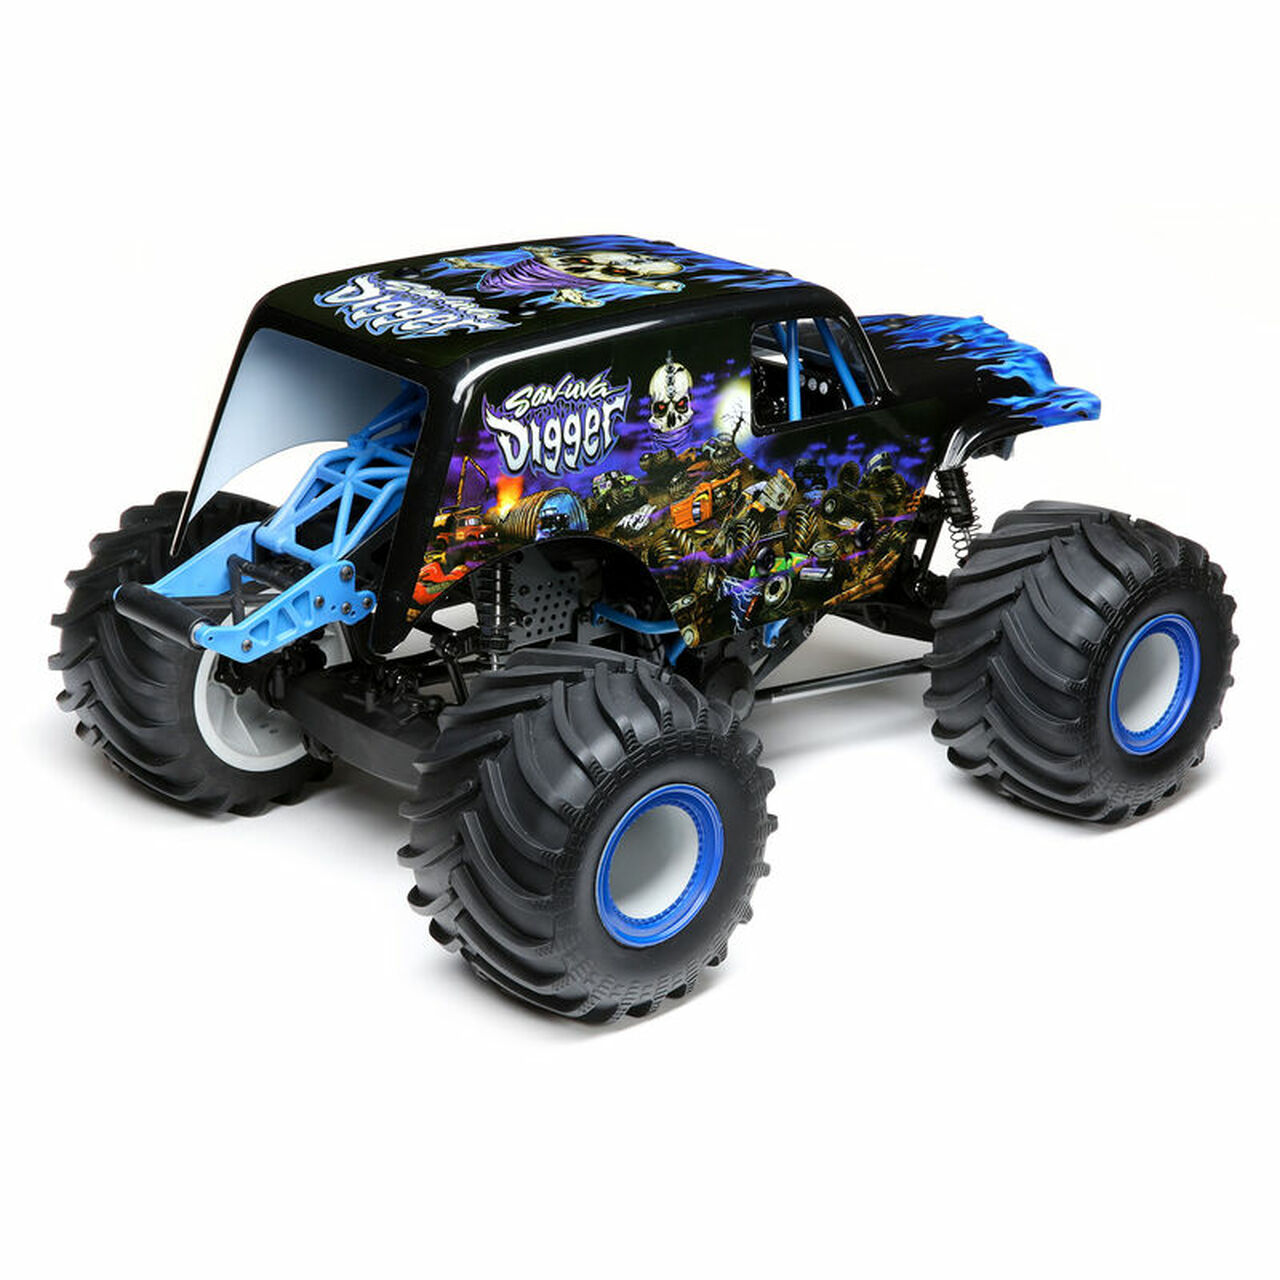 Losi Lmt 4wd Solid Axle Monster Truck Rtr Son Uva Digger Edition Beachrc Com